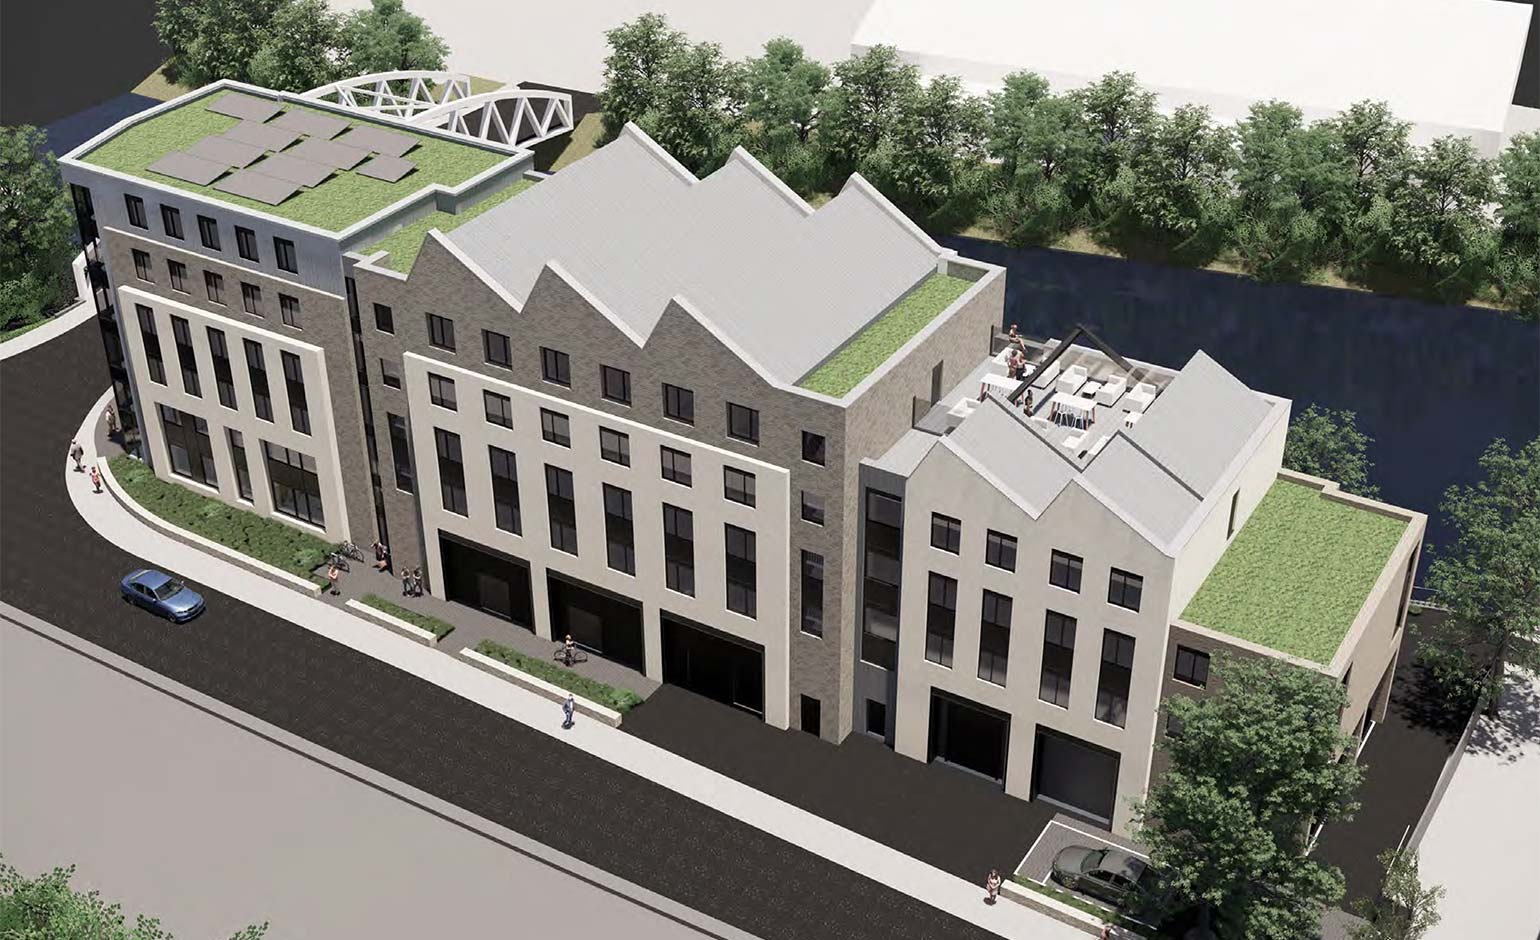 Future-proofed student accommodation planned for Jubilee Centre in Bath